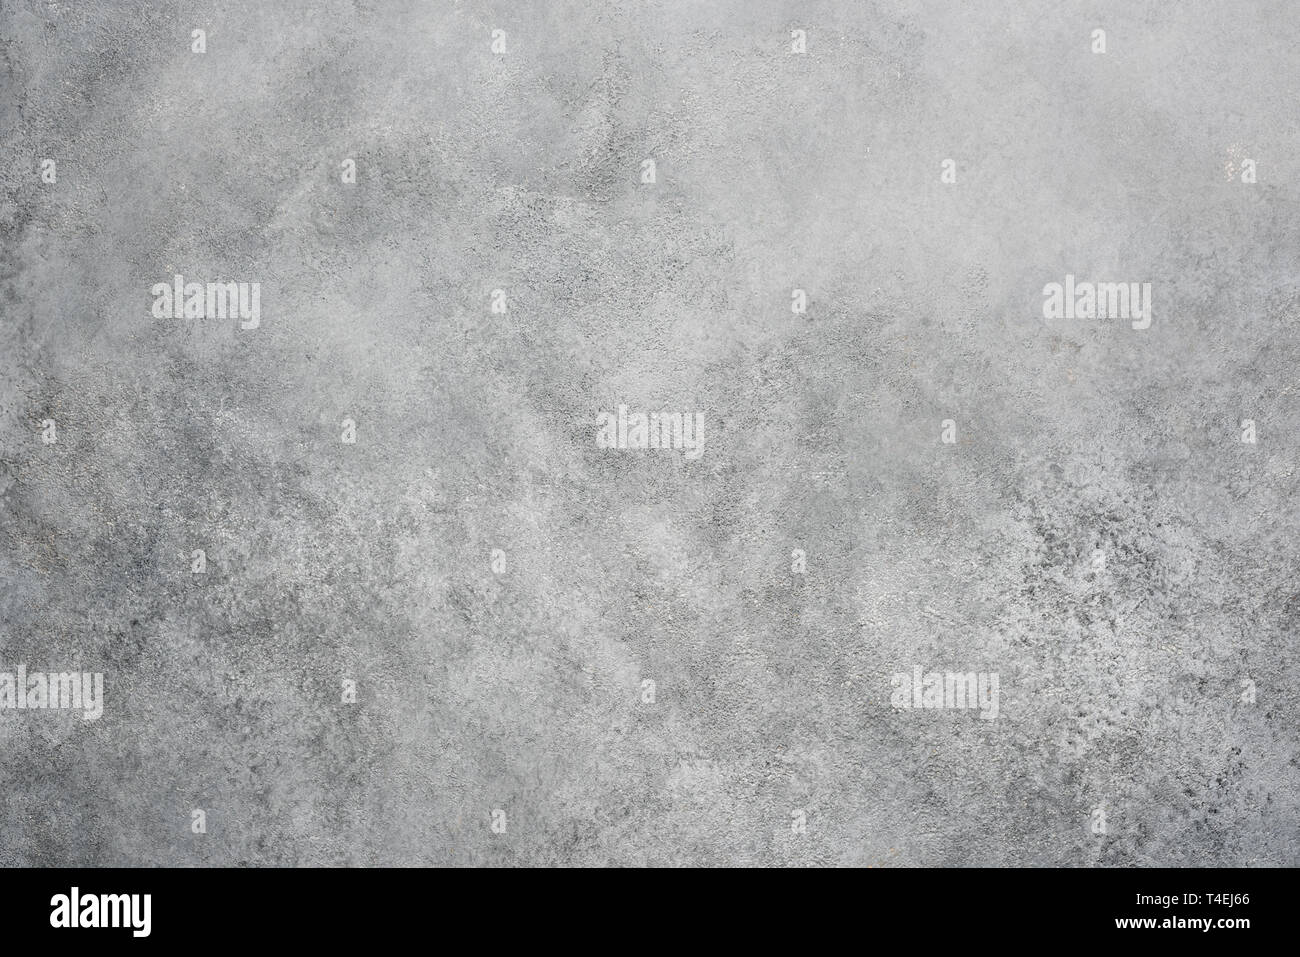 Grey concrete background or texture high resolution. Horizontal orientation, copy space for text - Stock Image